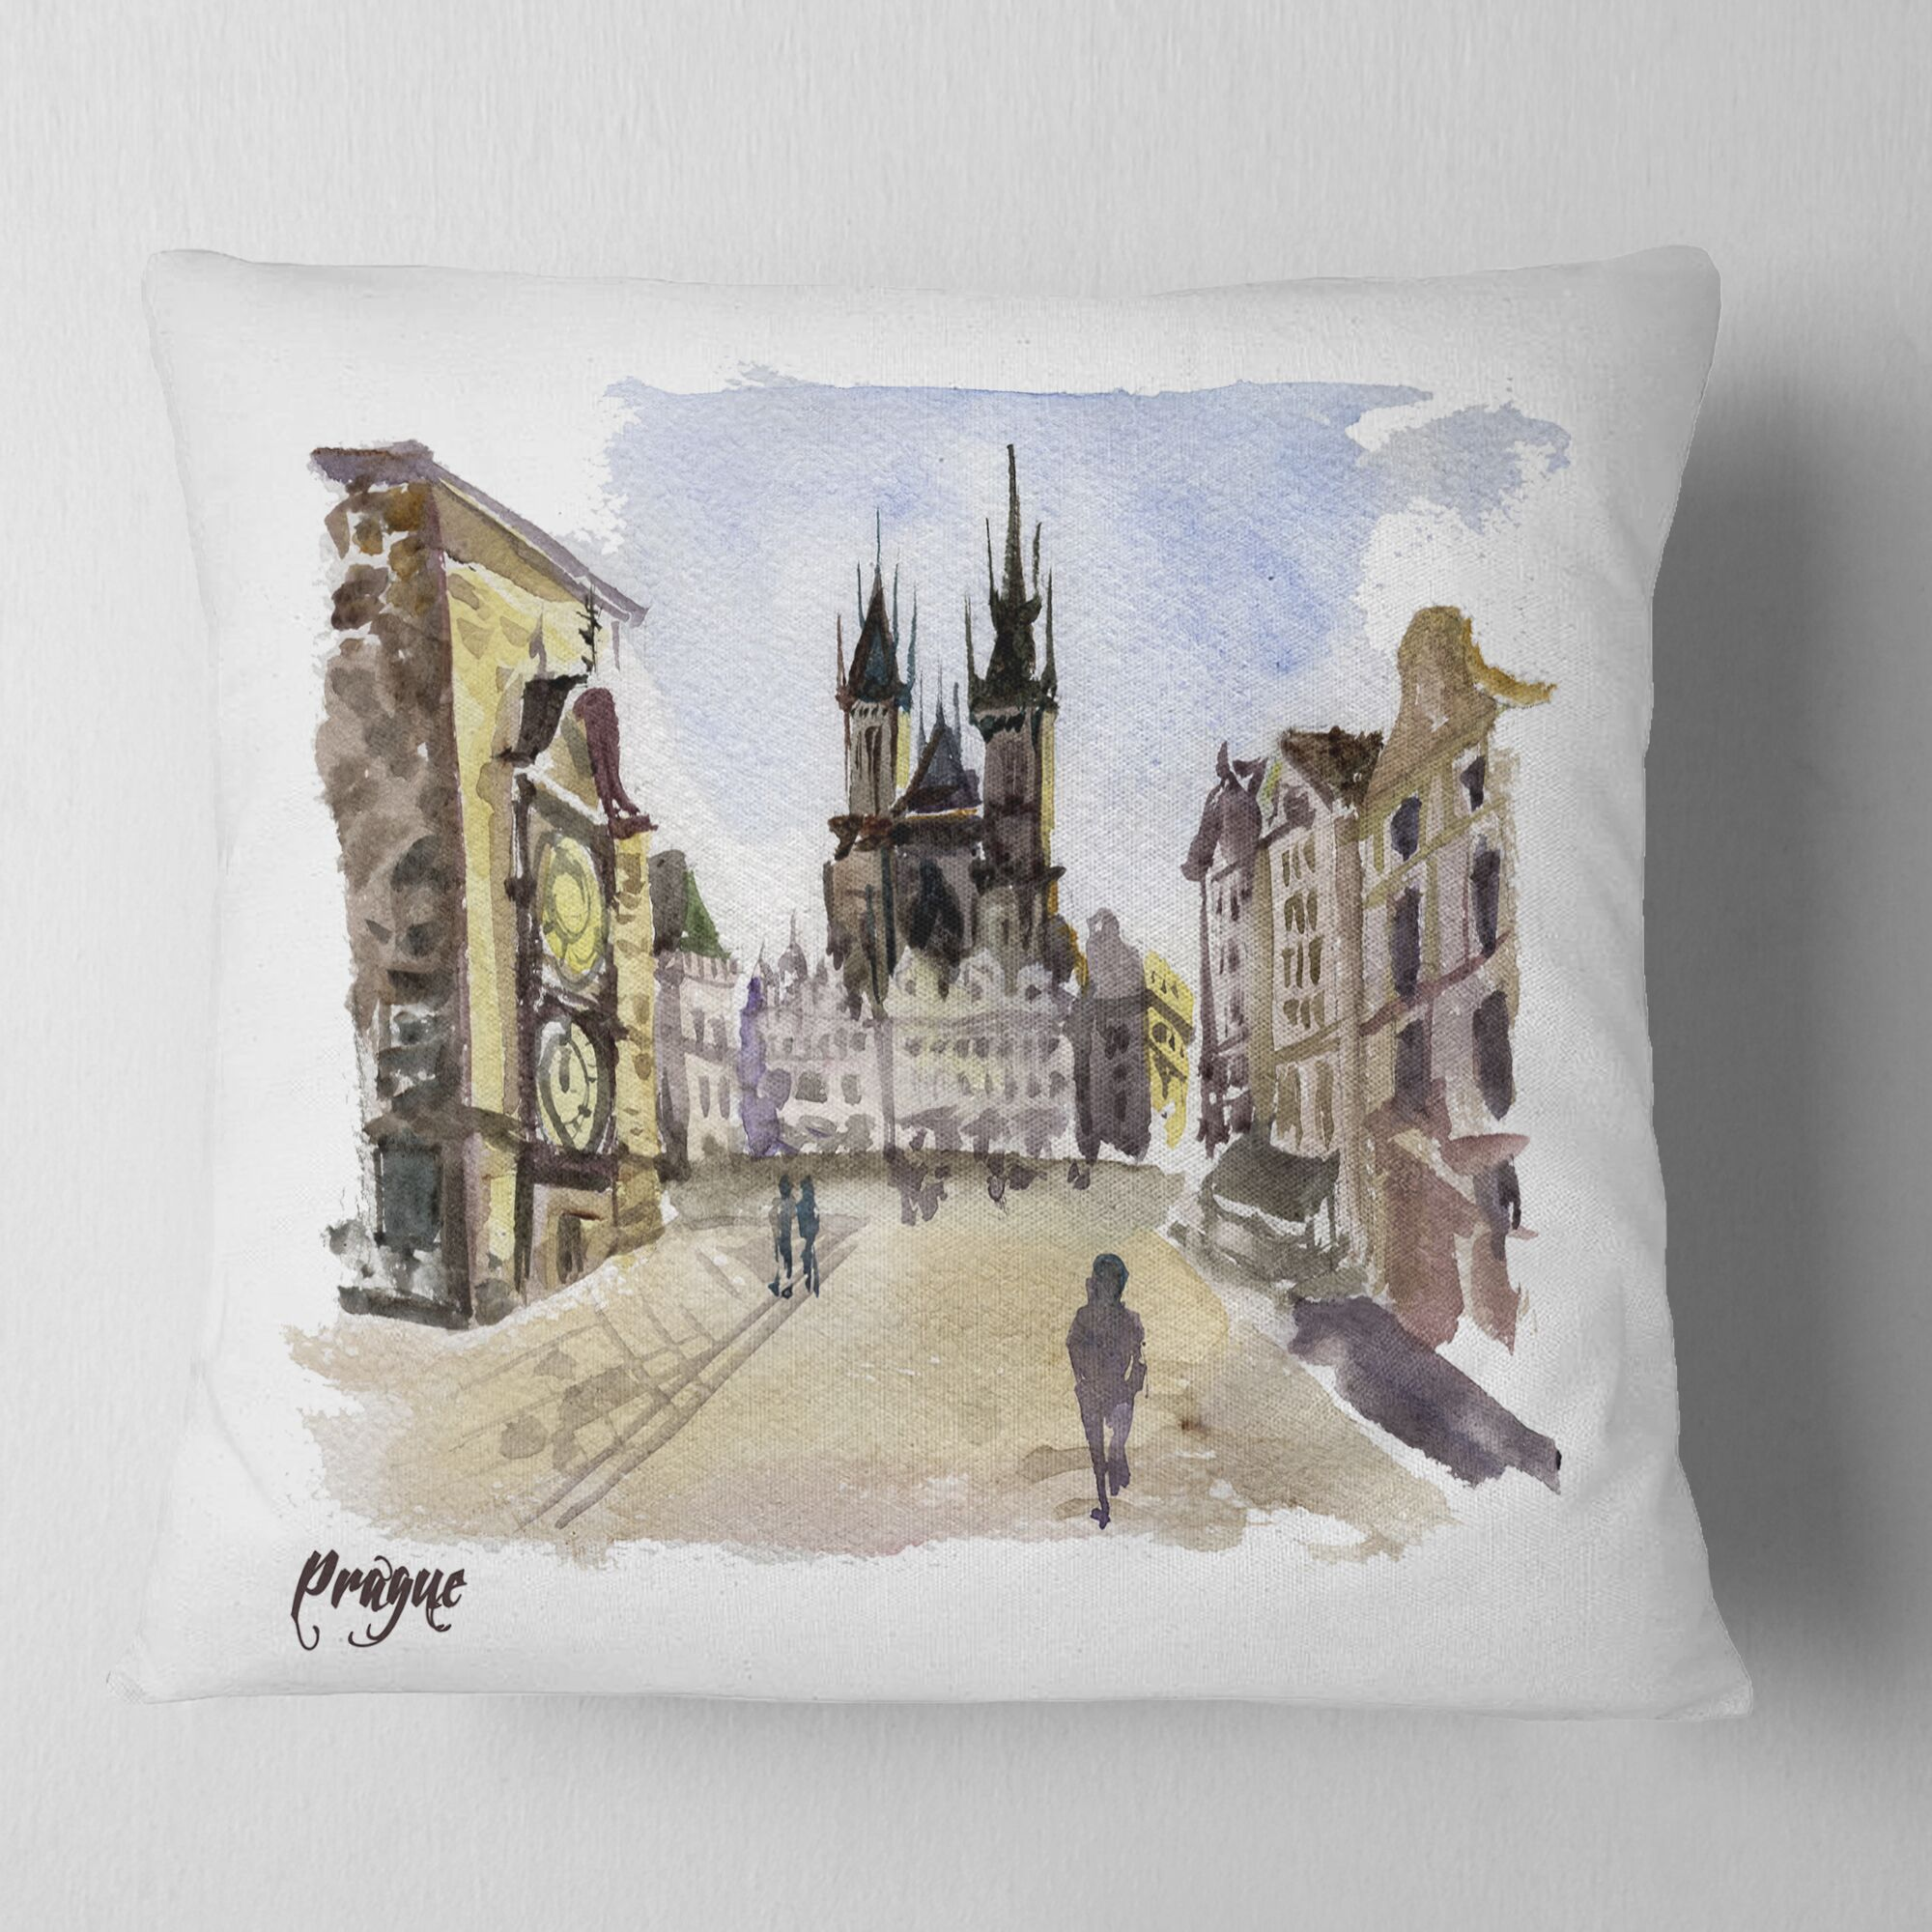 Cityscape Prague Hand Drawn Illustration Pillow Size: 18